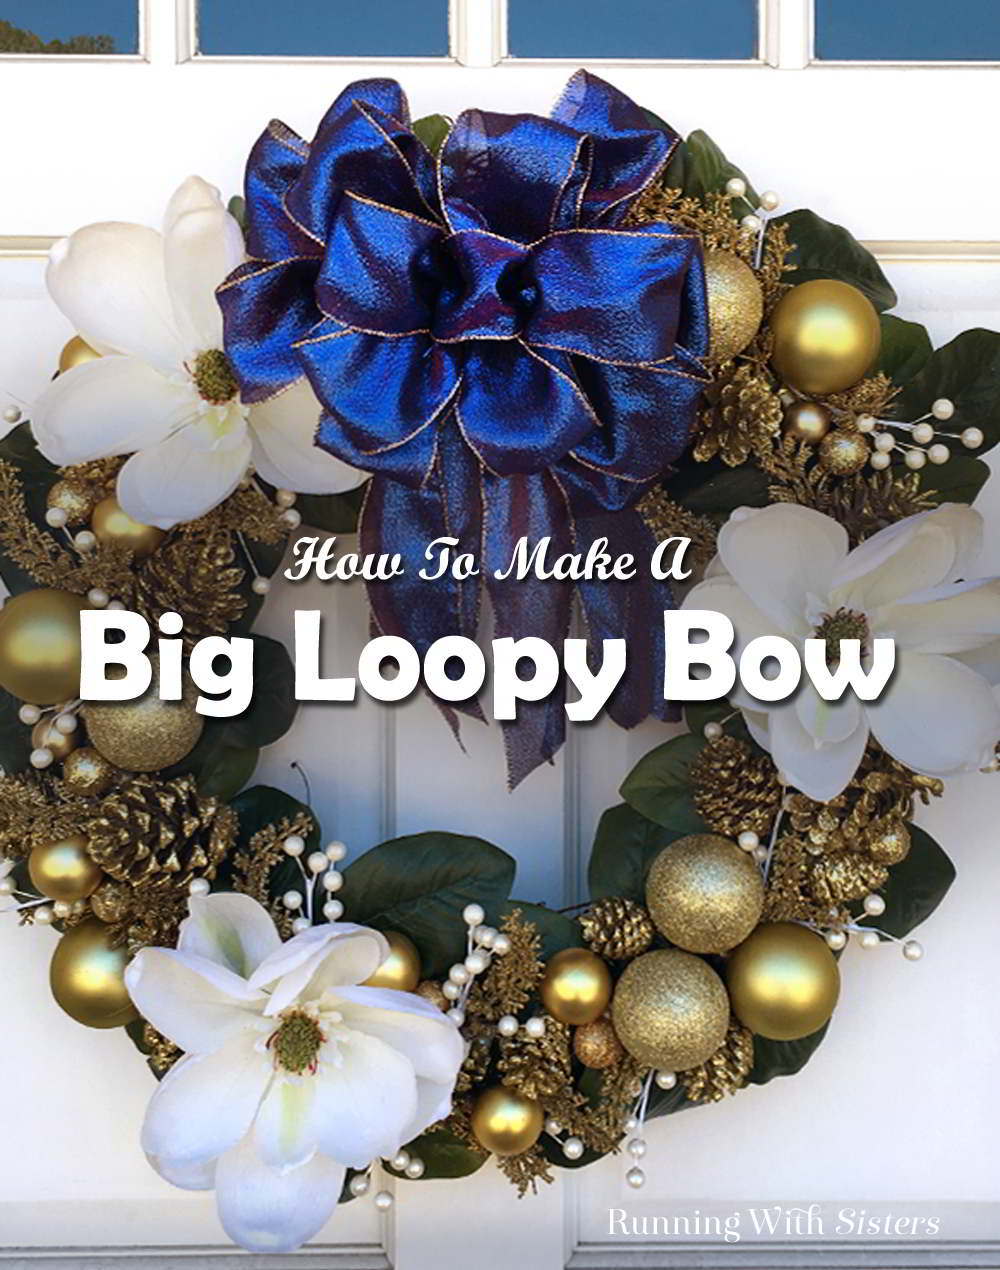 big-loopy-bow-pinterest